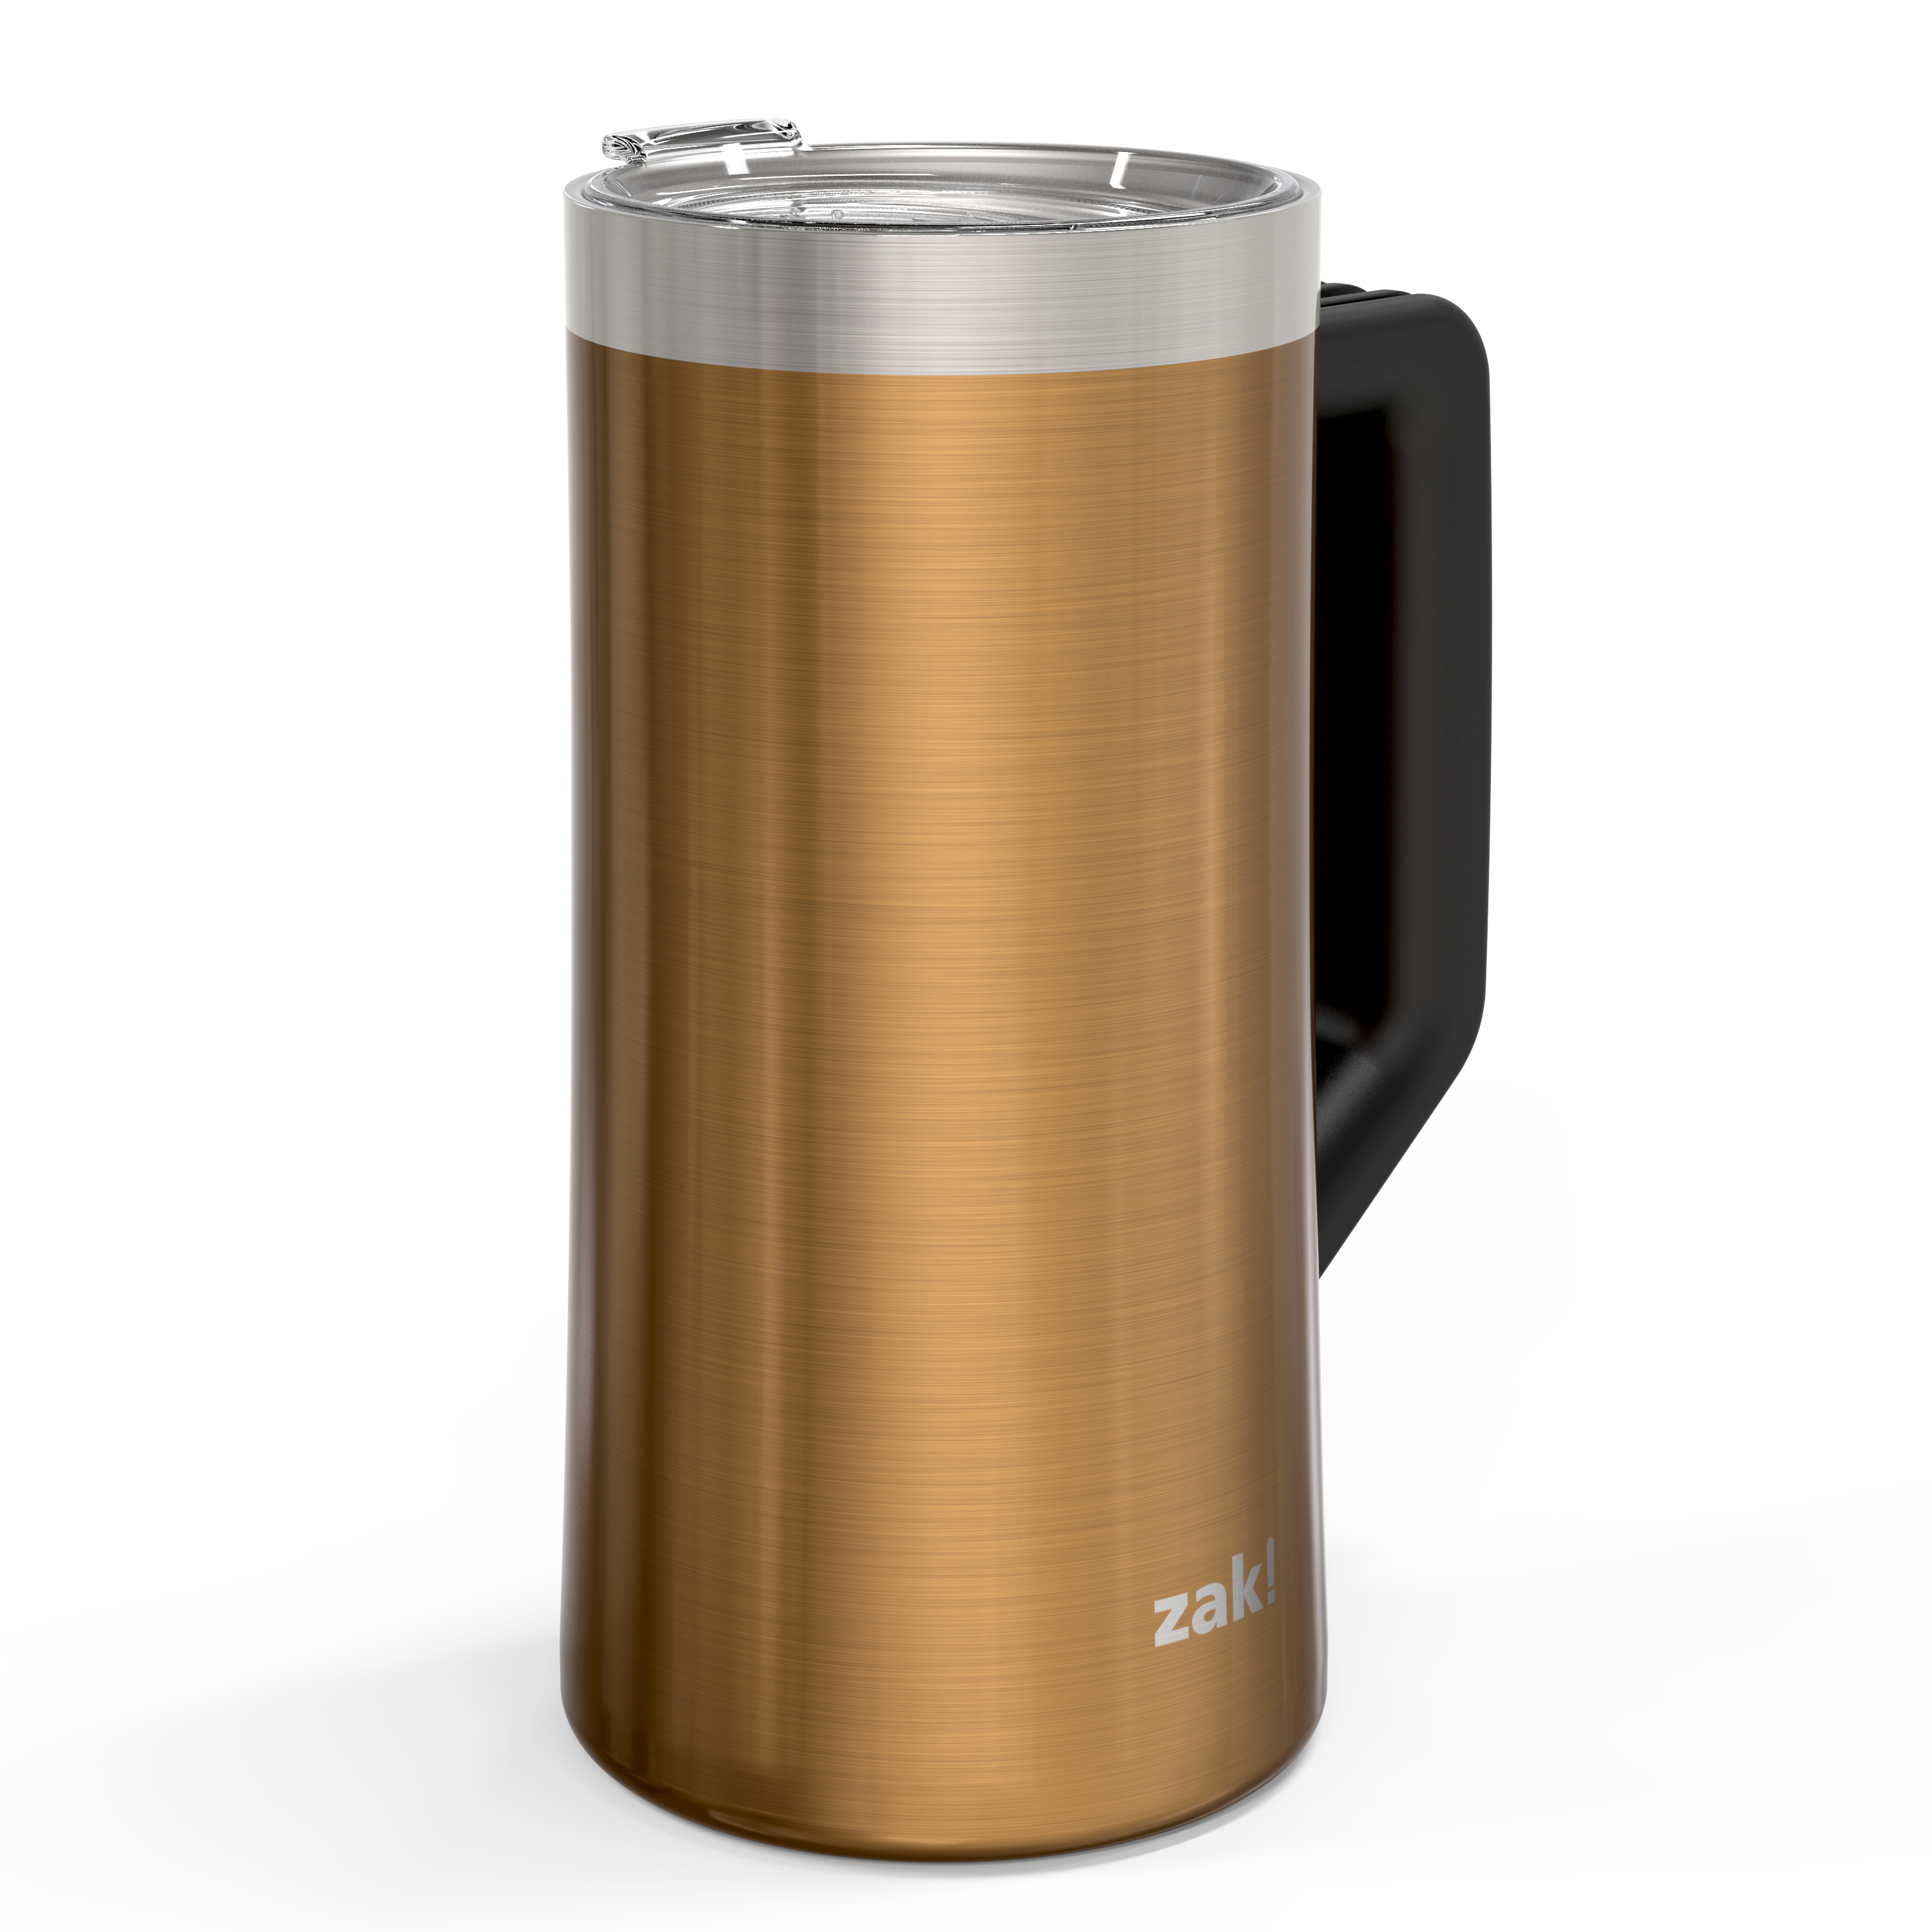 Creston 25 ounce Vacuum Insulated Stainless Steel Tumbler, Copper slideshow image 3